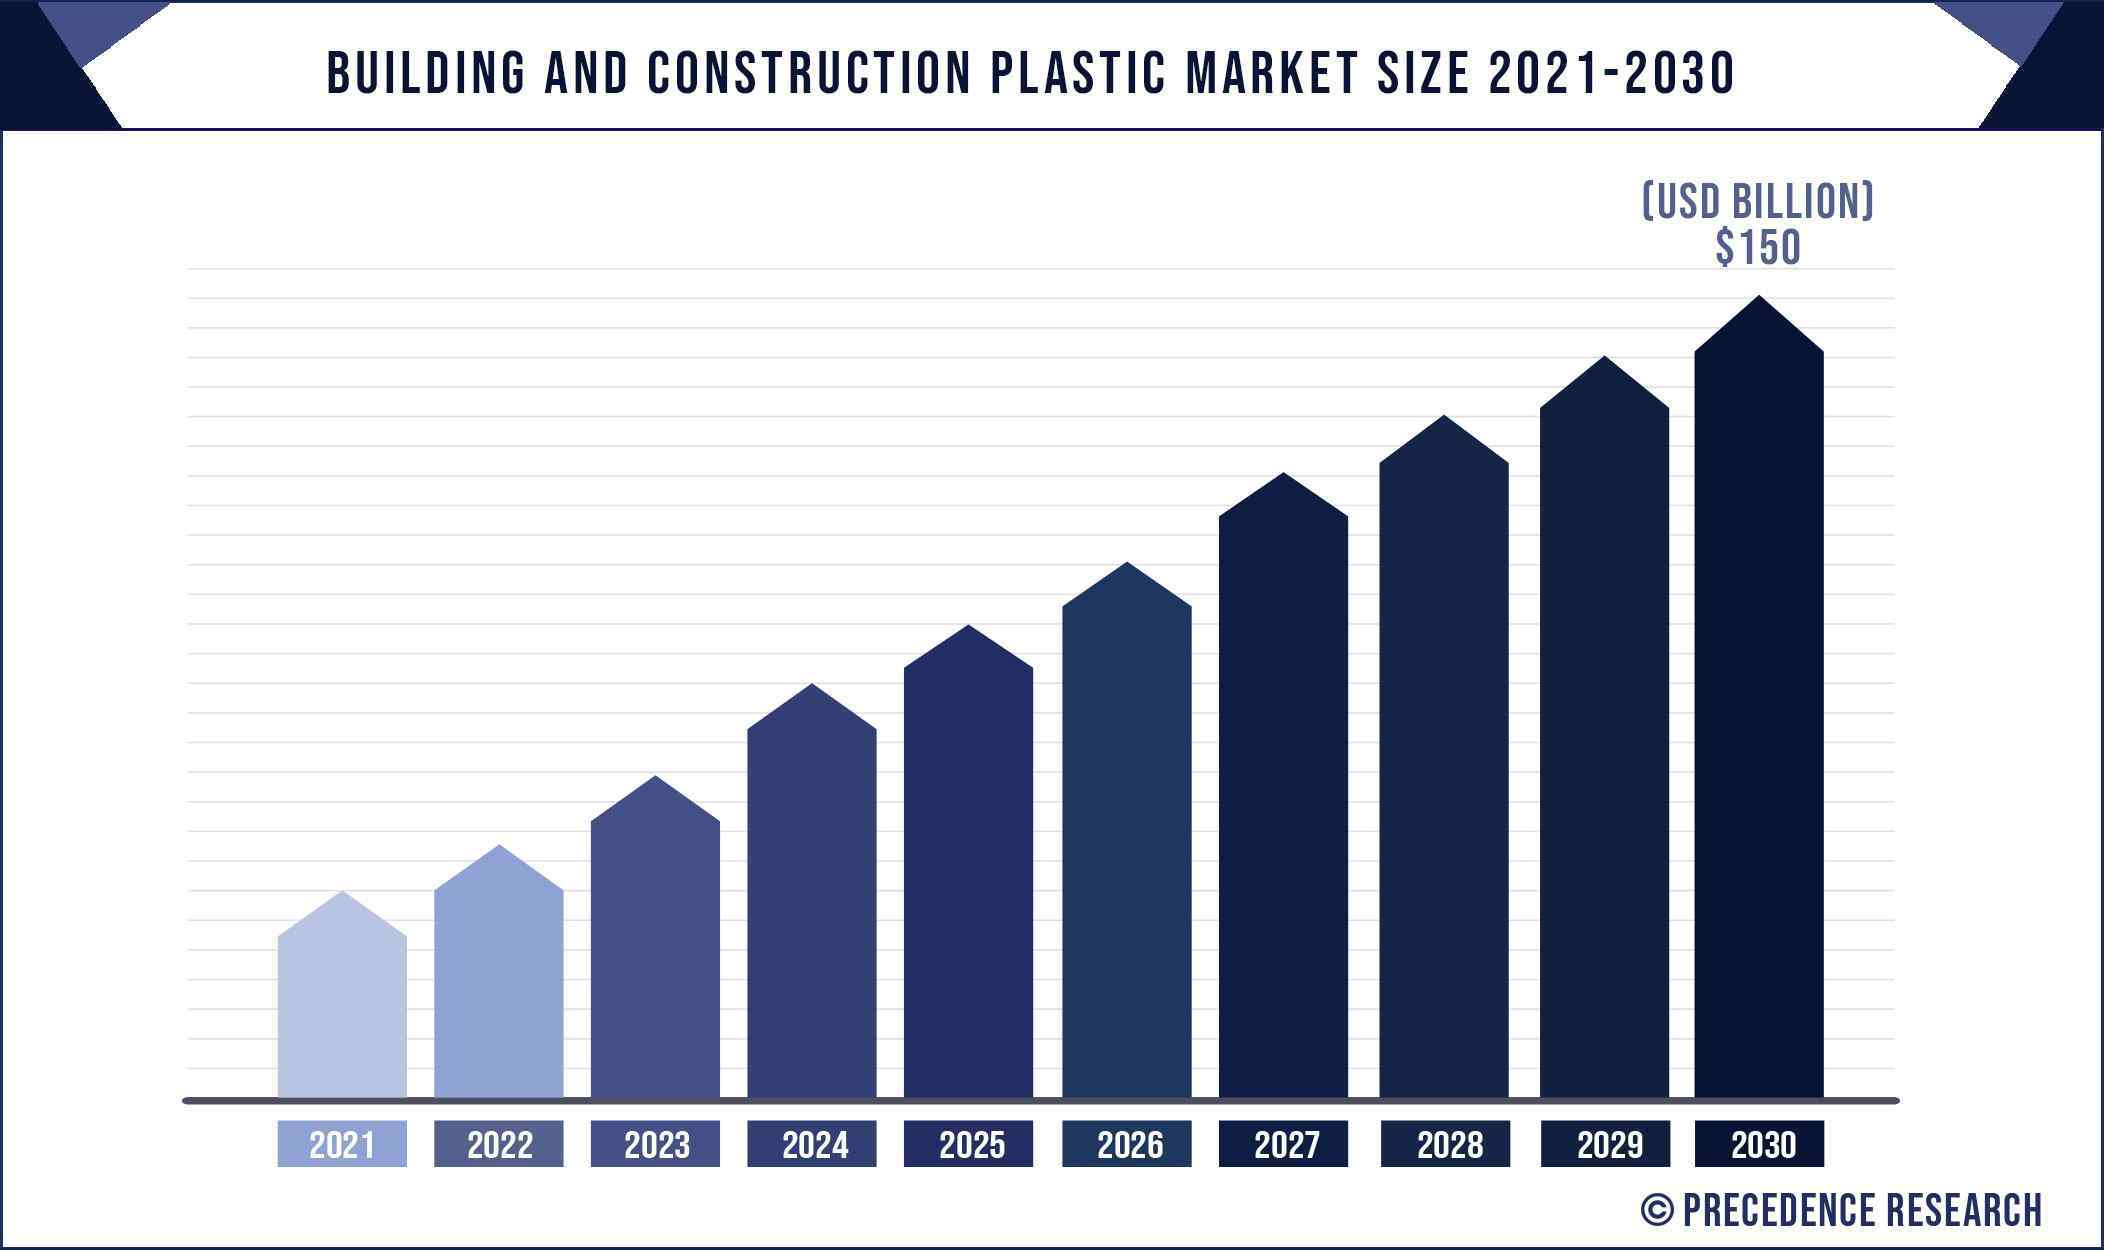 Building and Construction Plastic Market Size 2021 to 2030